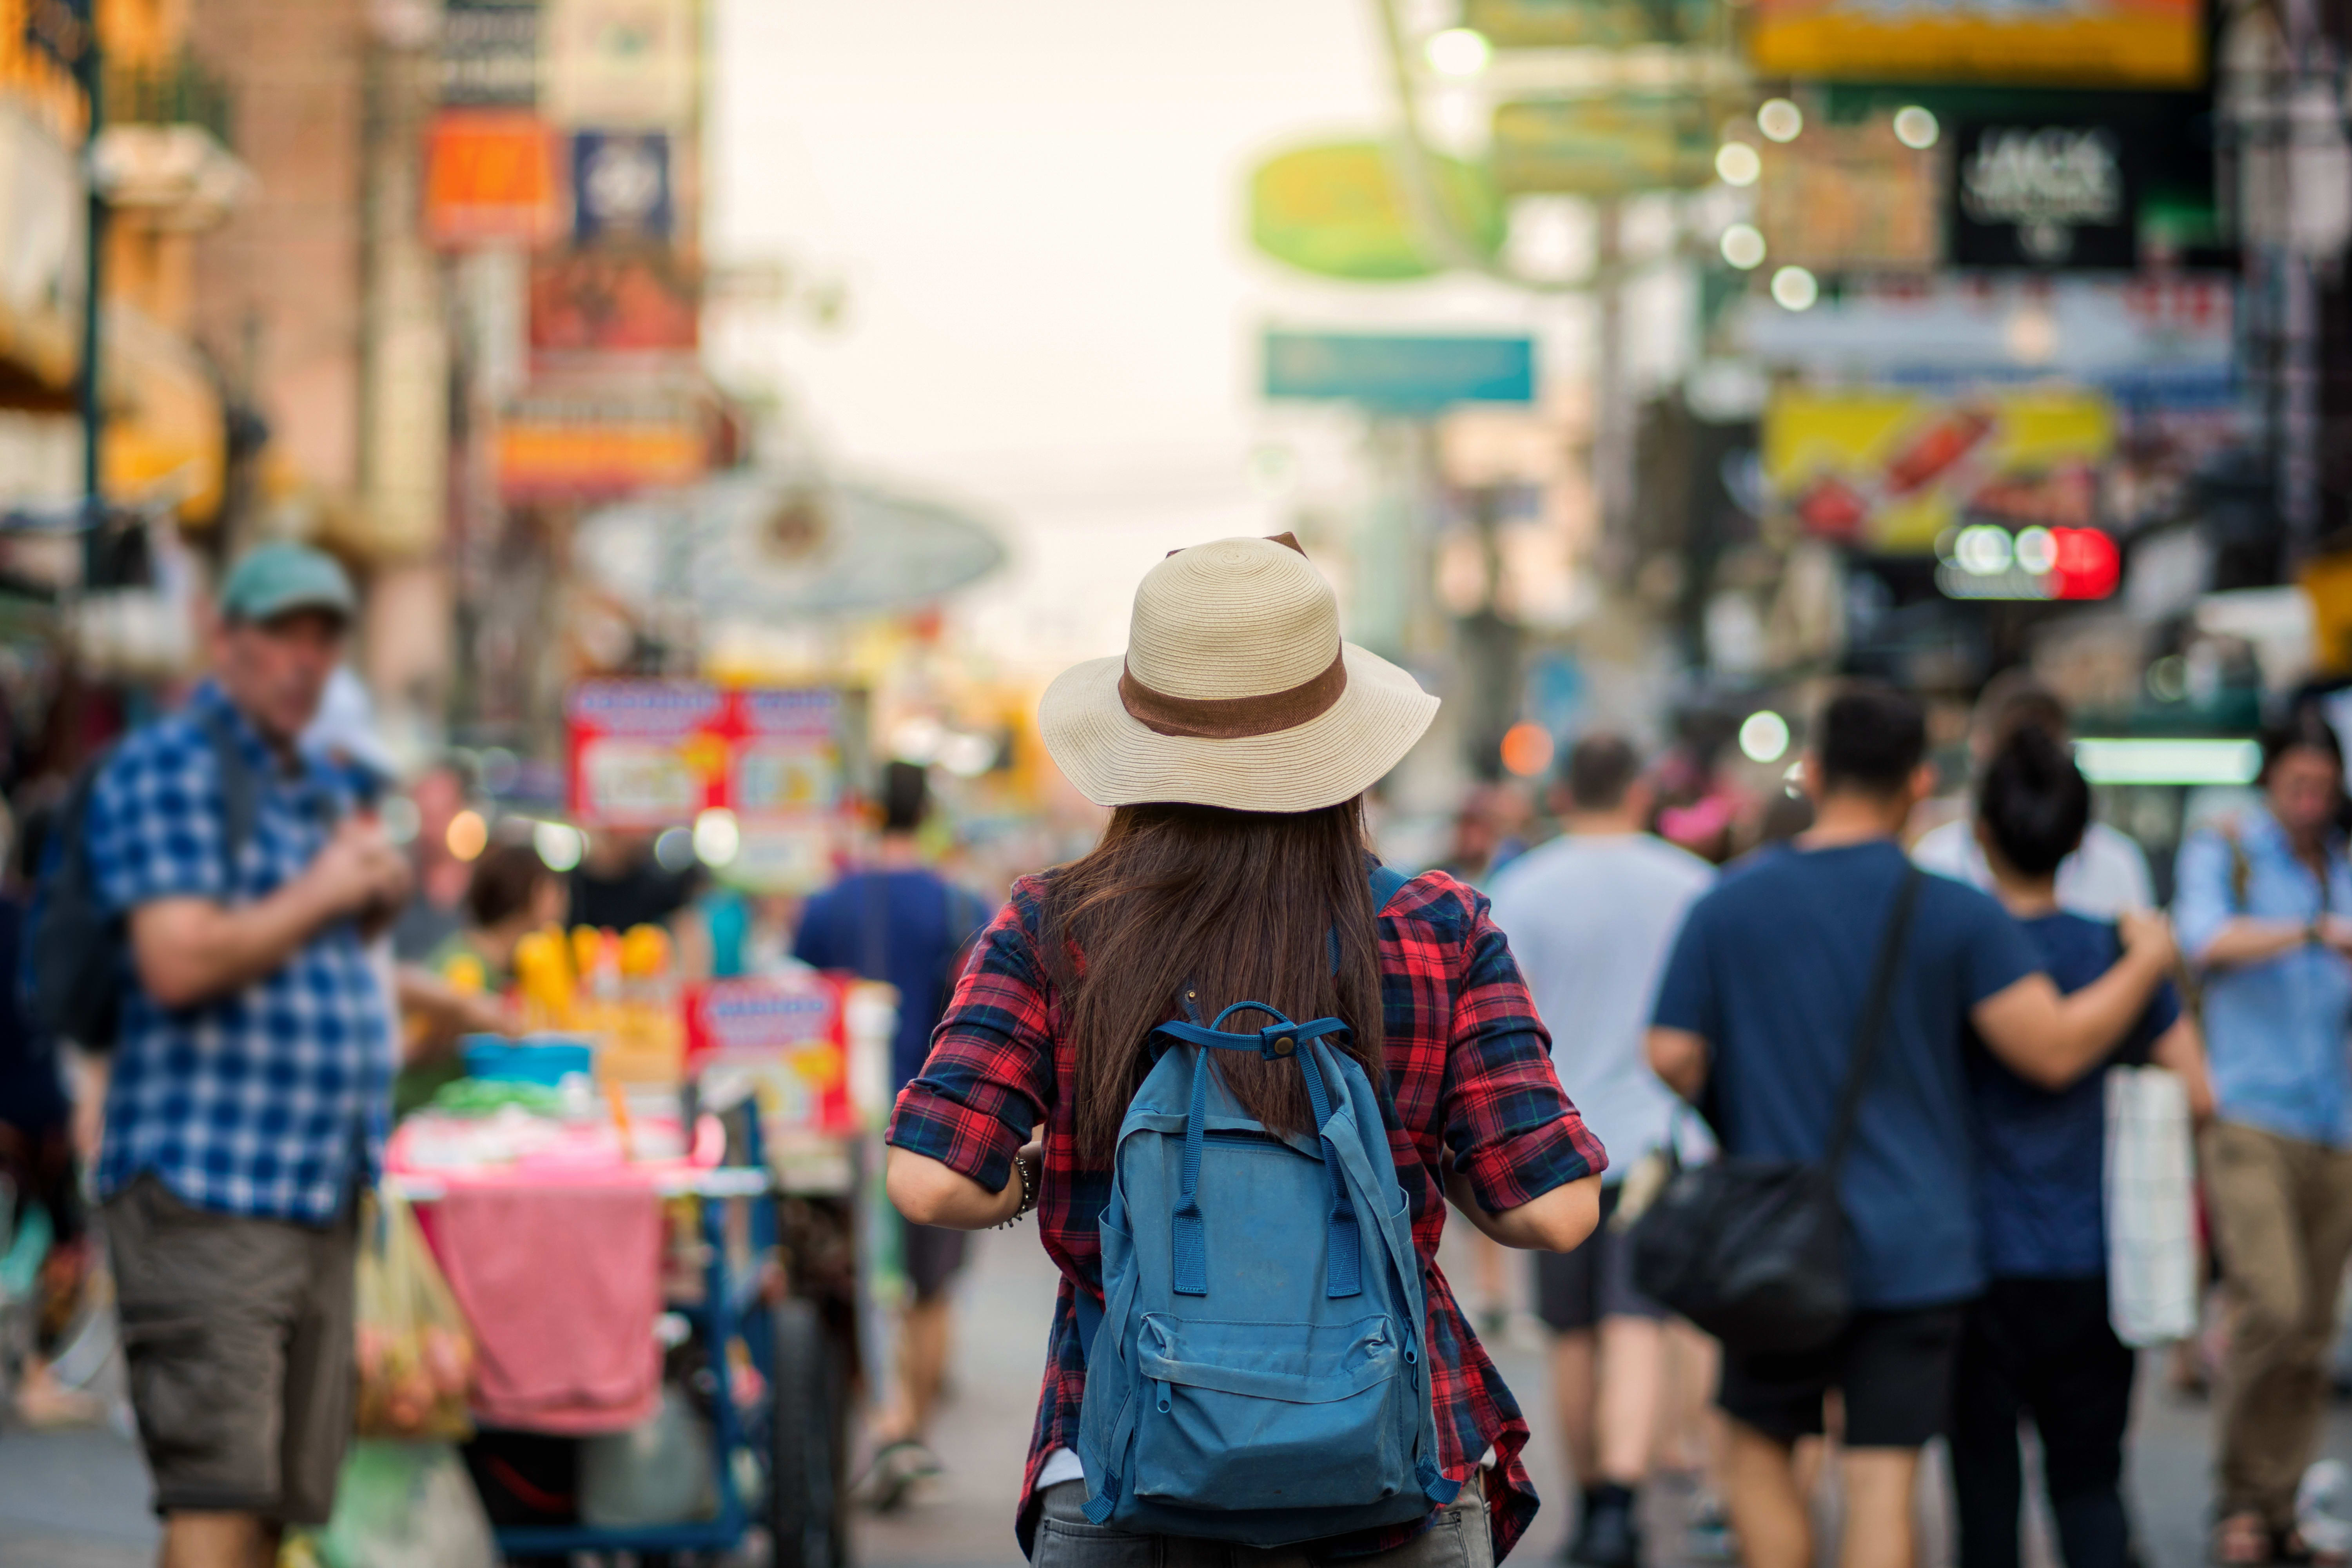 A tourist-friendly location is a good investment for short-term rental managers